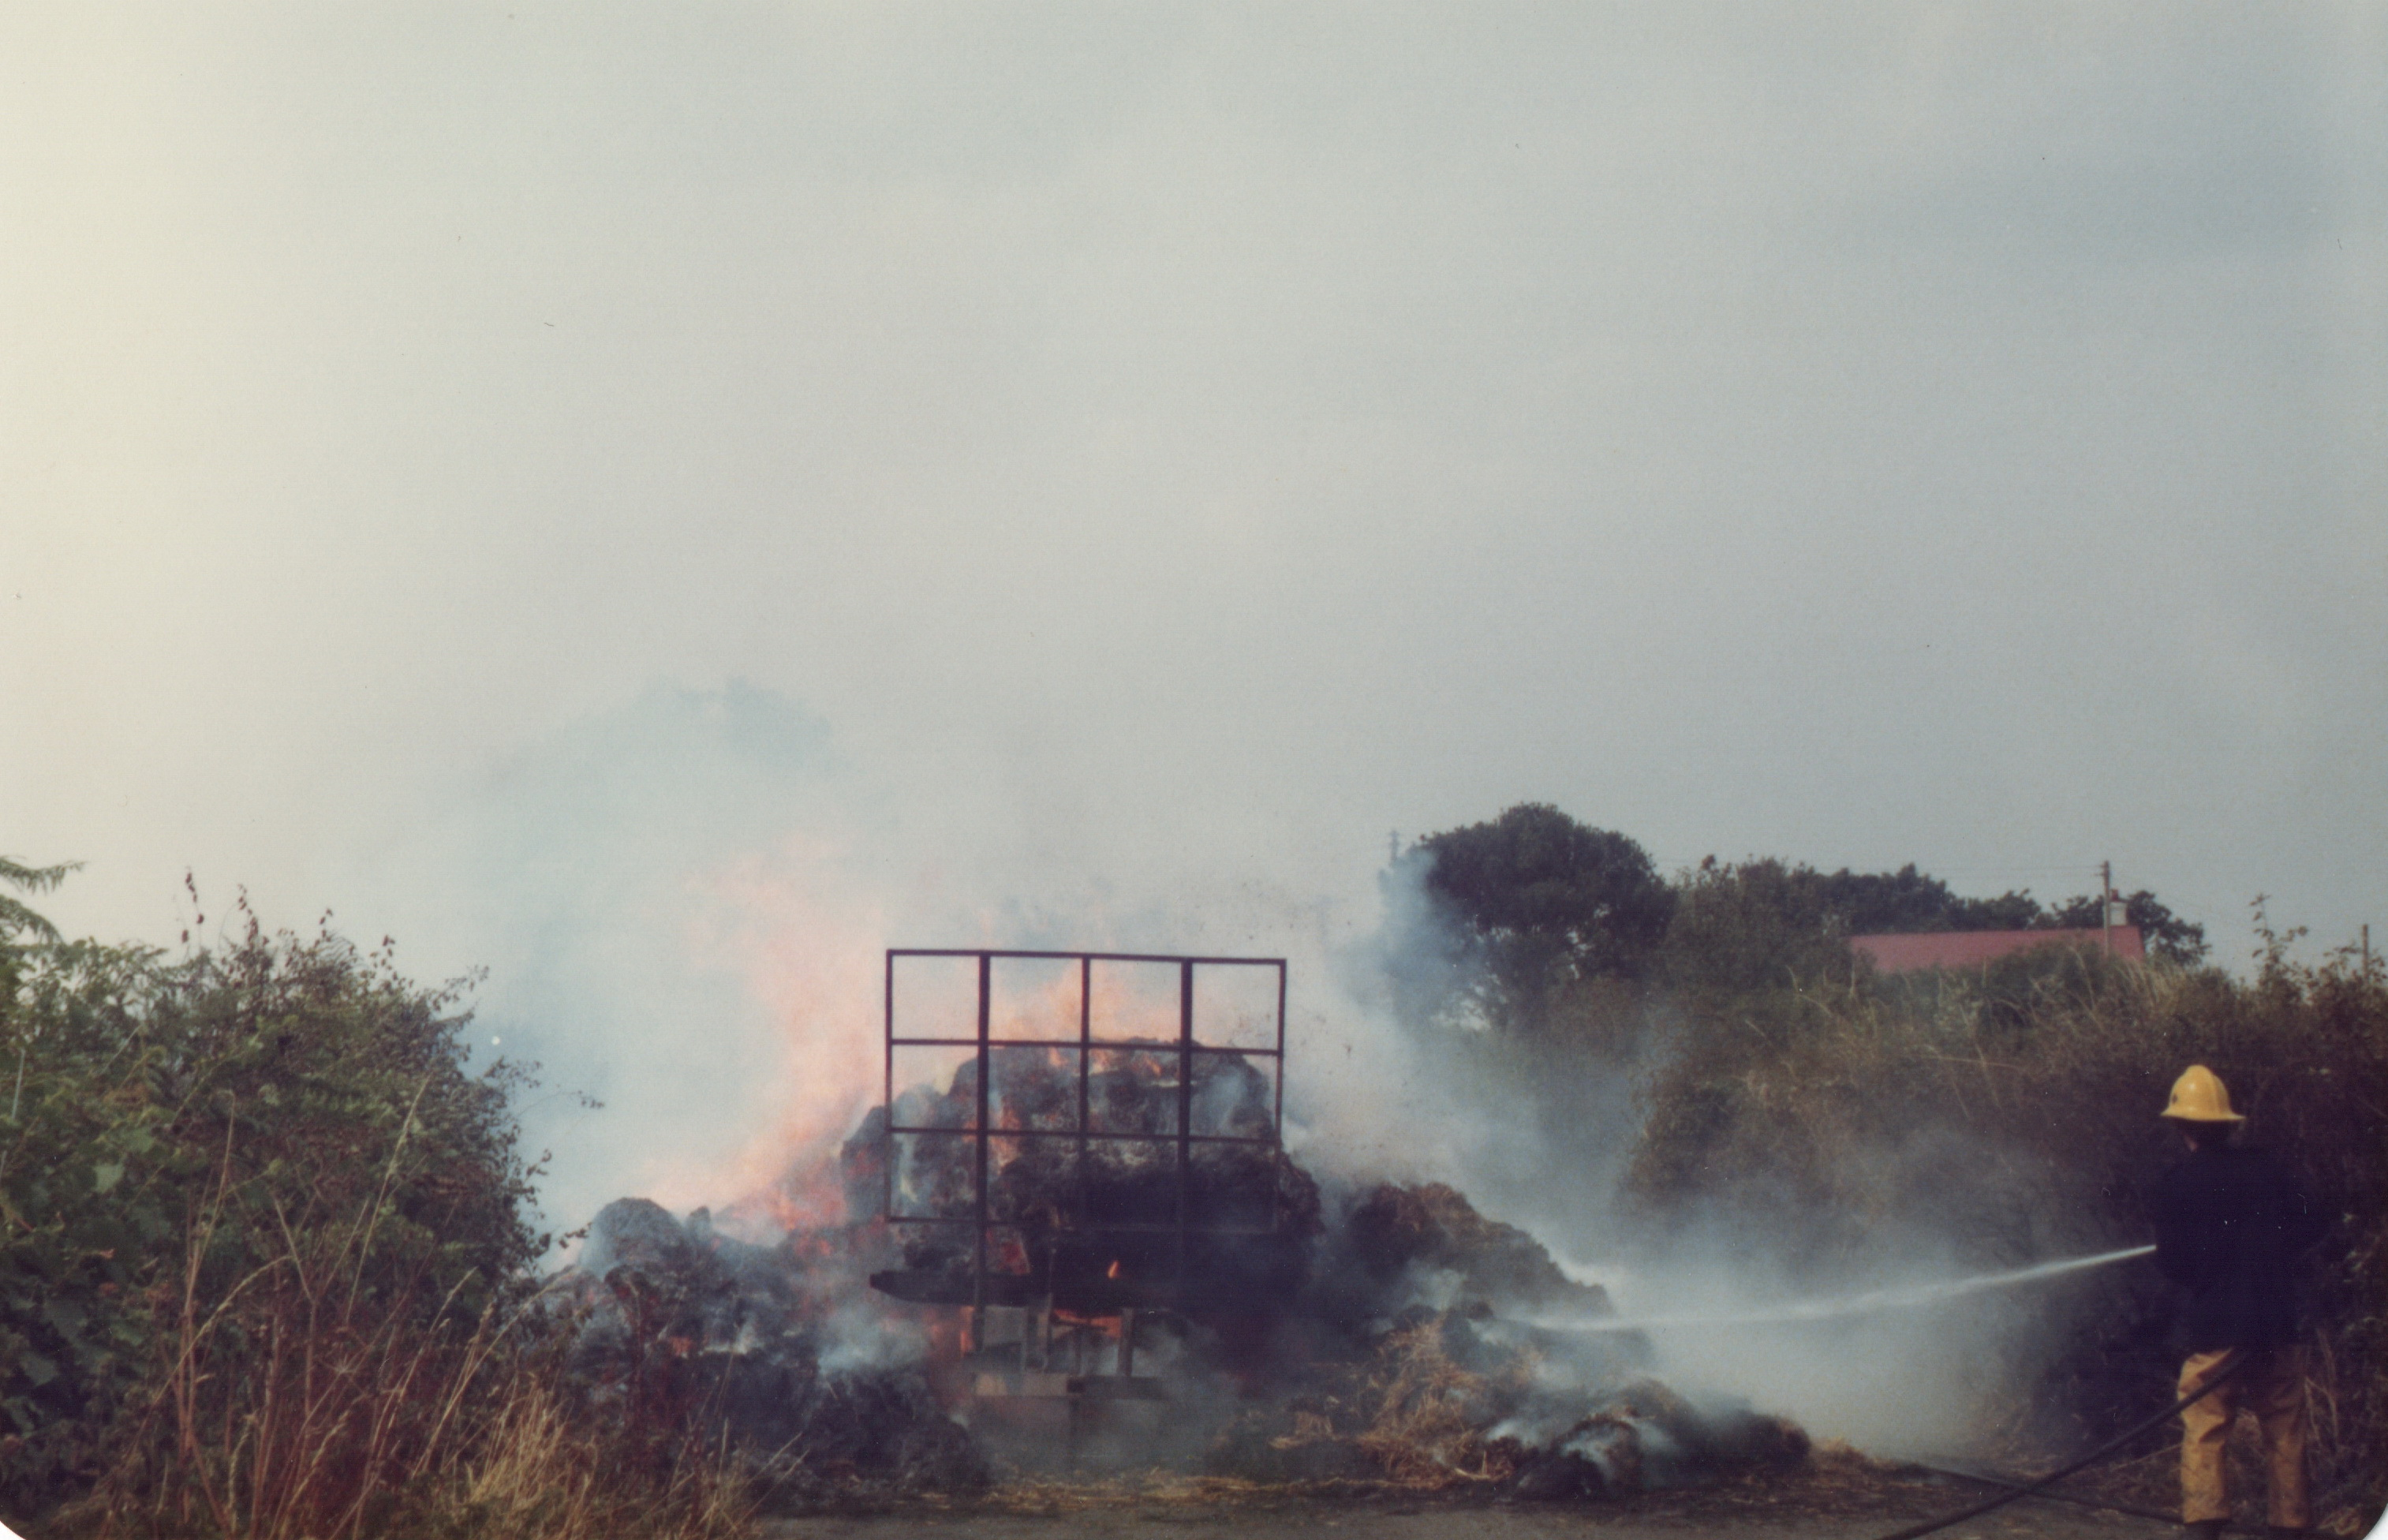 Vehicle Fire on the B3254 August 18th, 1983. Photo's courtesy of Gary Chapman.